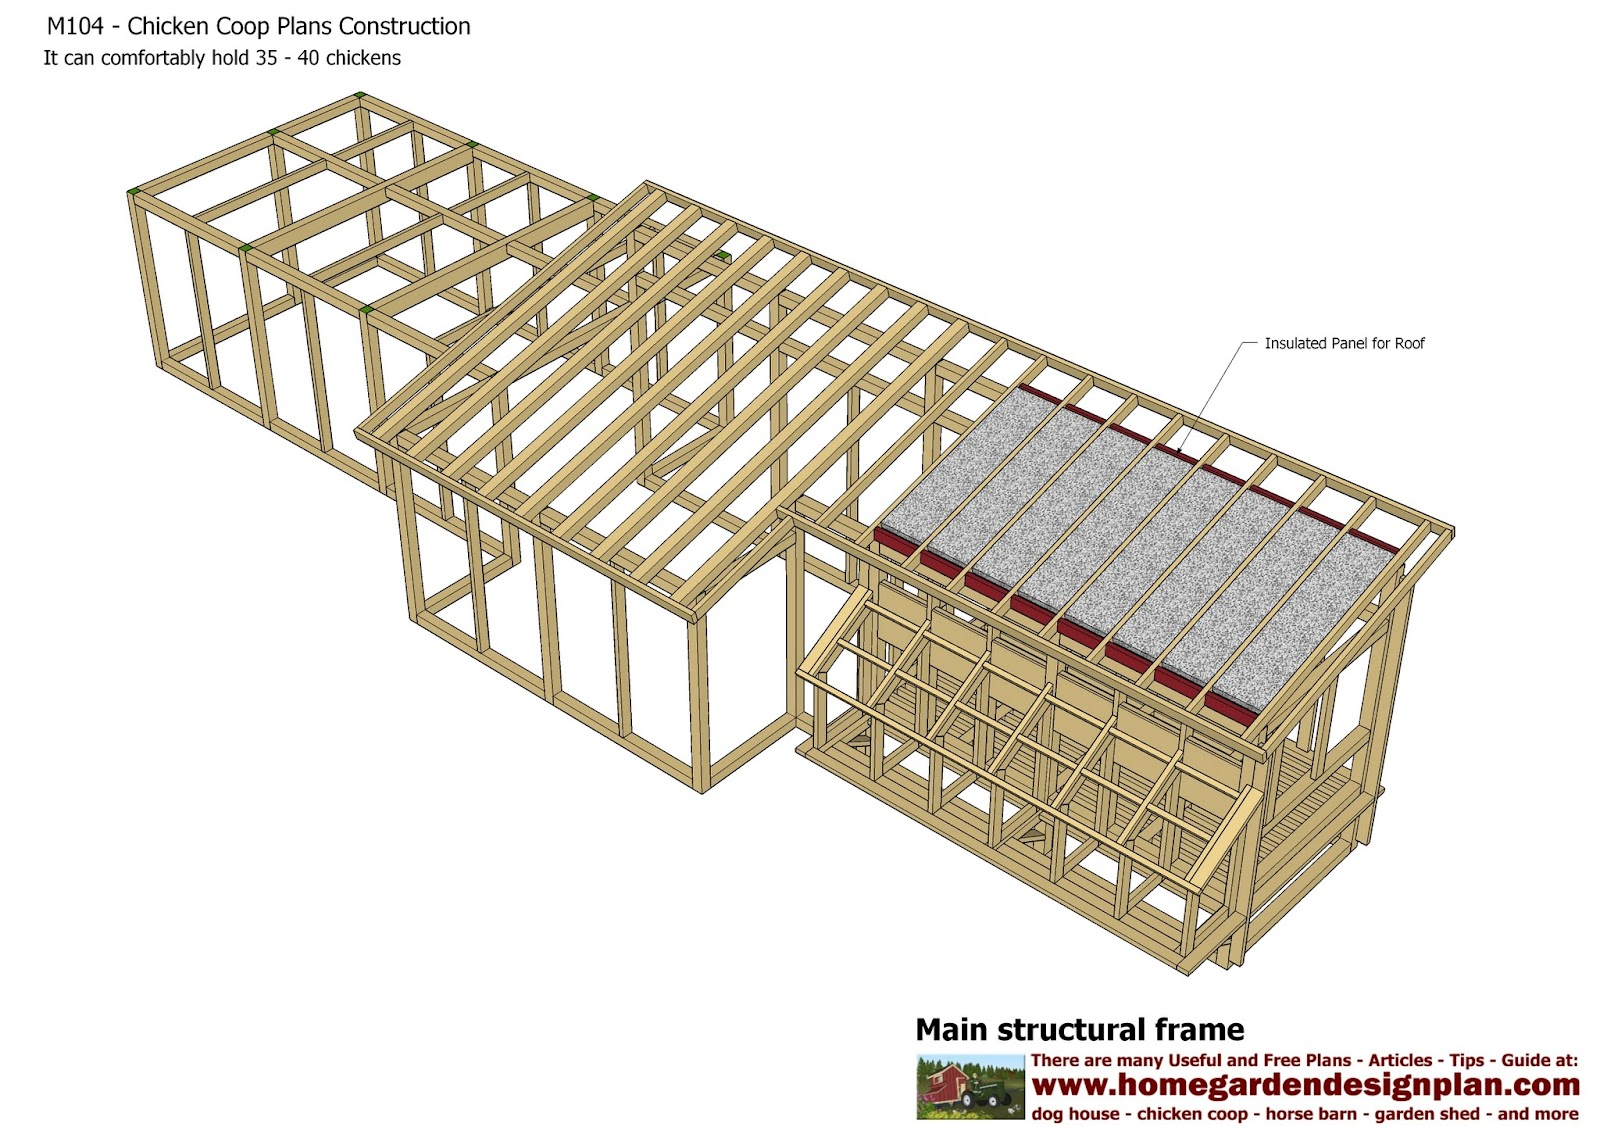 Home garden plans m104 chicken coop plans construction for Free chicken plans